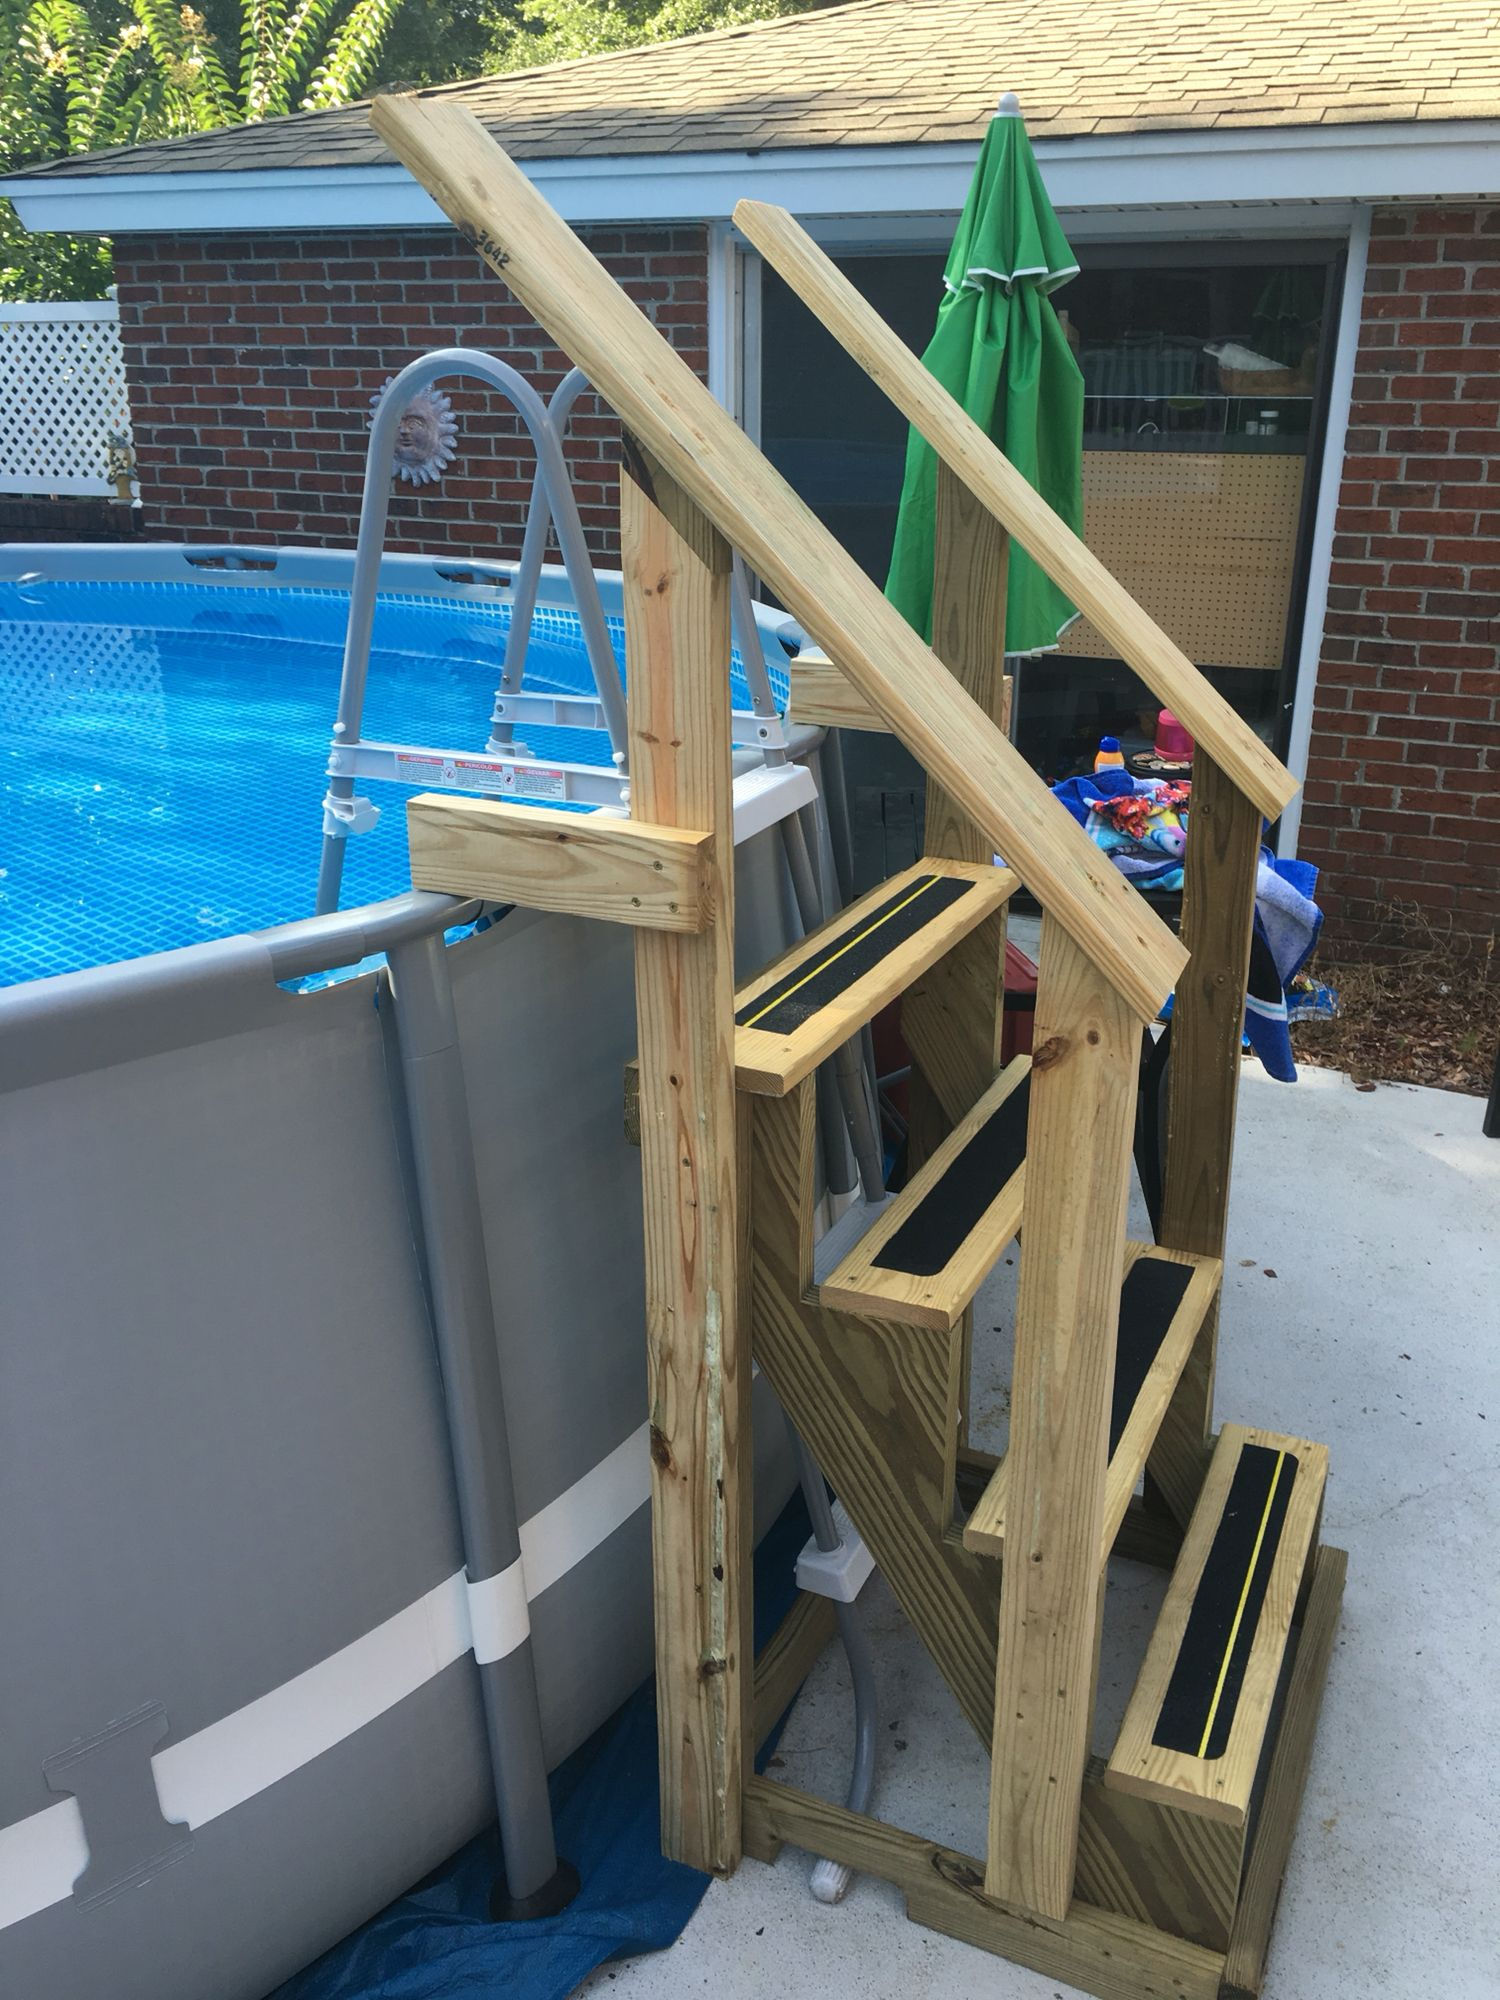 61 Pool Steps And Ladders Ideas Pool Steps Above Ground Pool Above Ground Pool Steps